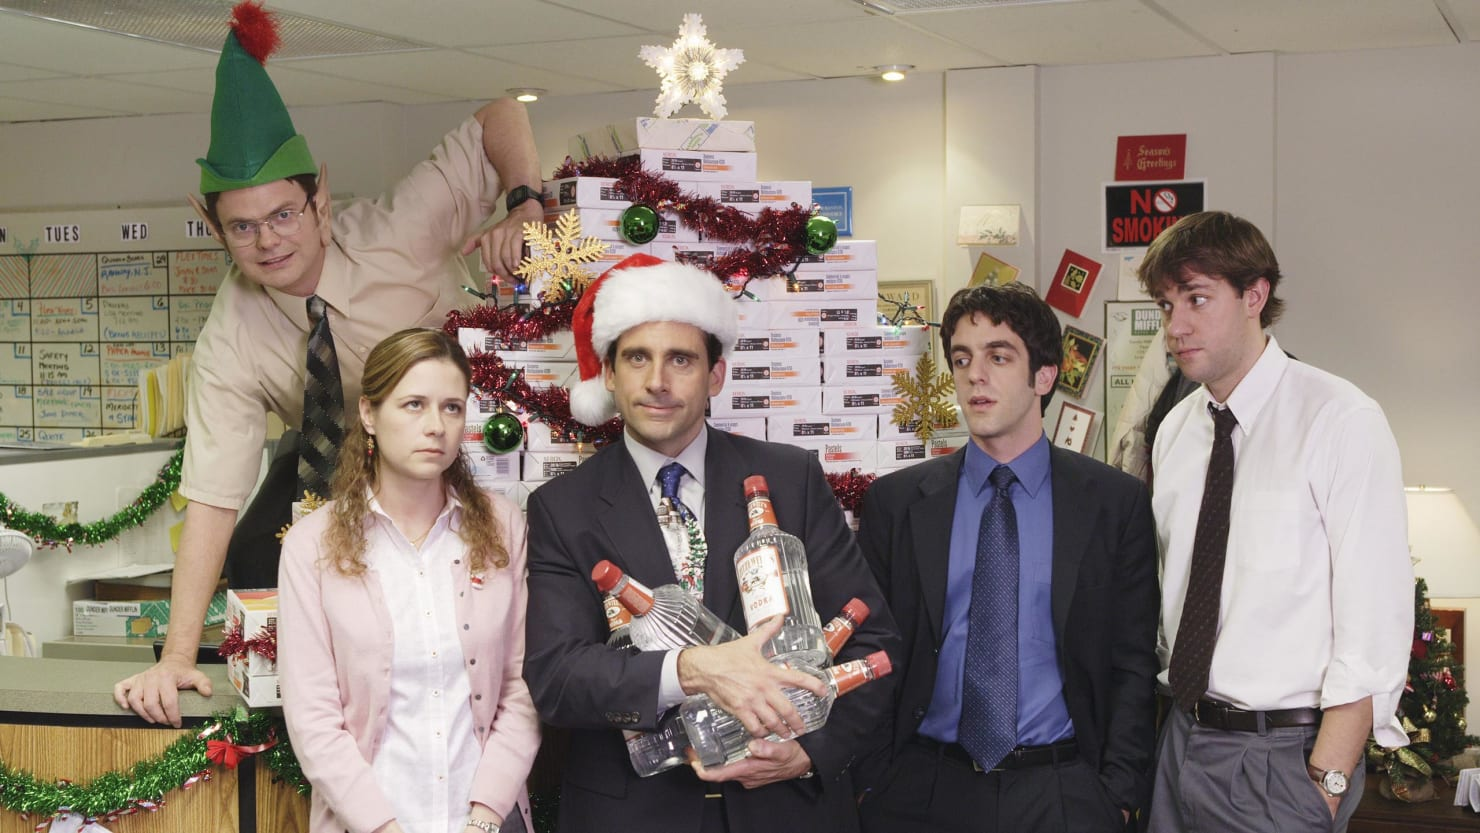 Is 'The Office' the Most Popular Show on Netflix?